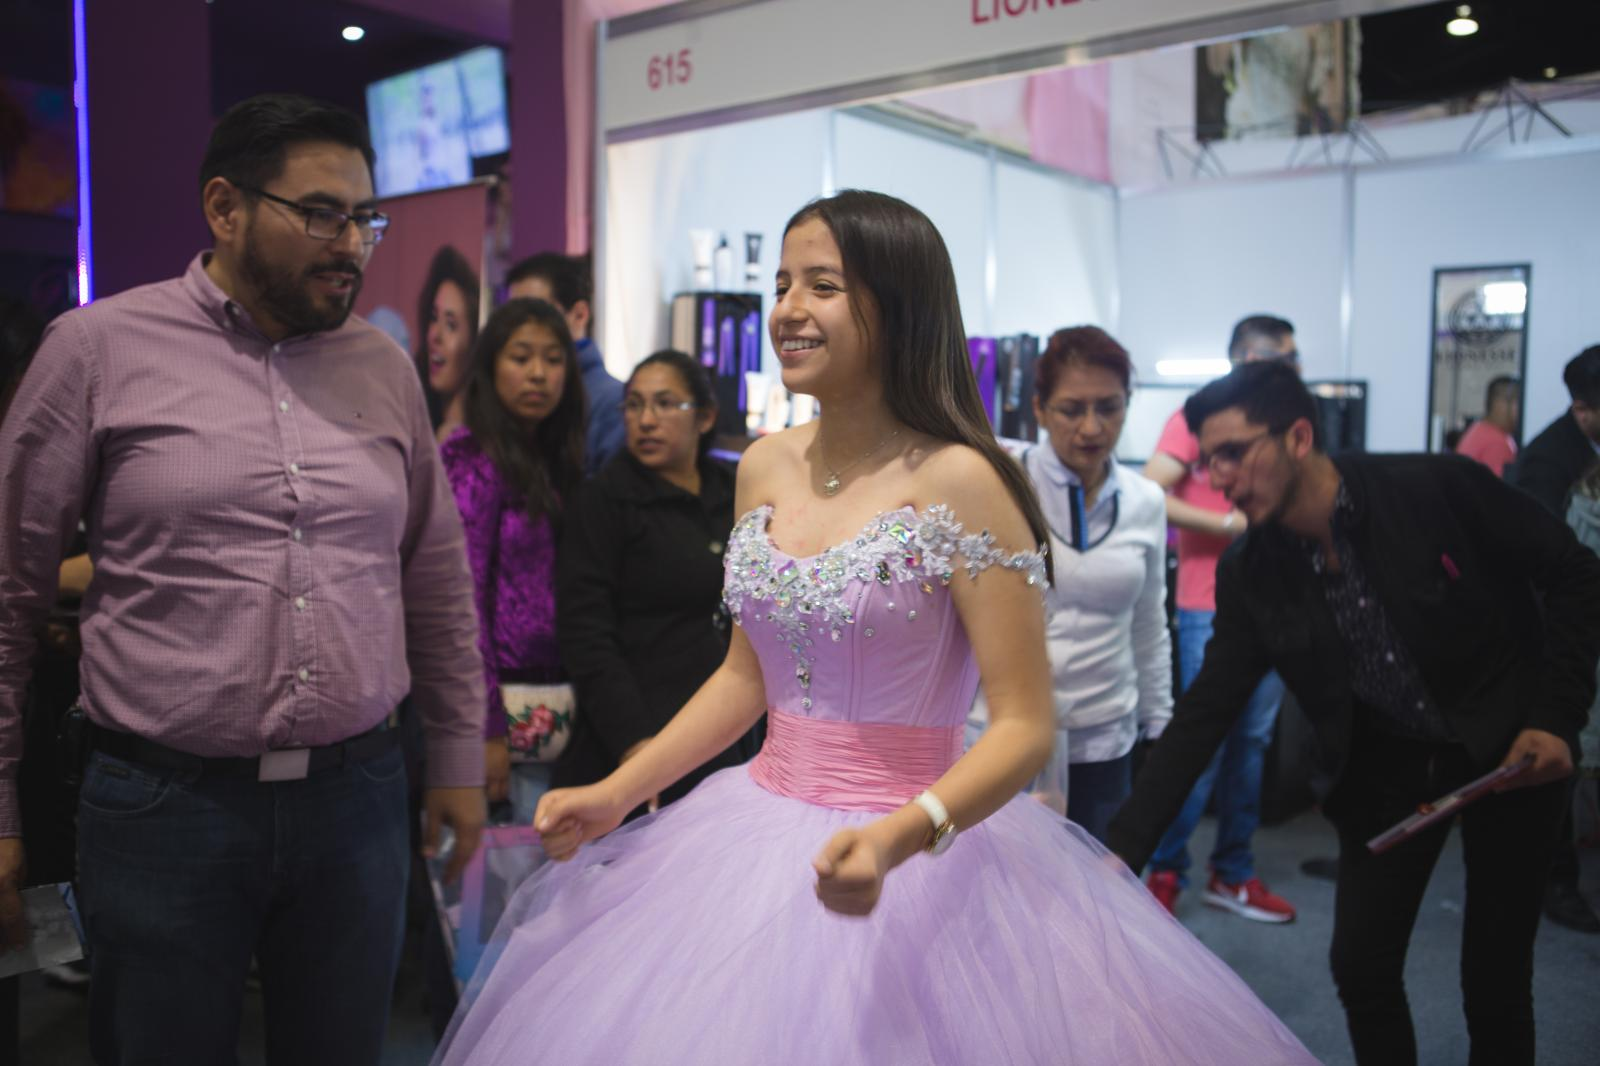 Photography image - Loading 01282018-GlobeMail-Quinceaneras-006.JPG